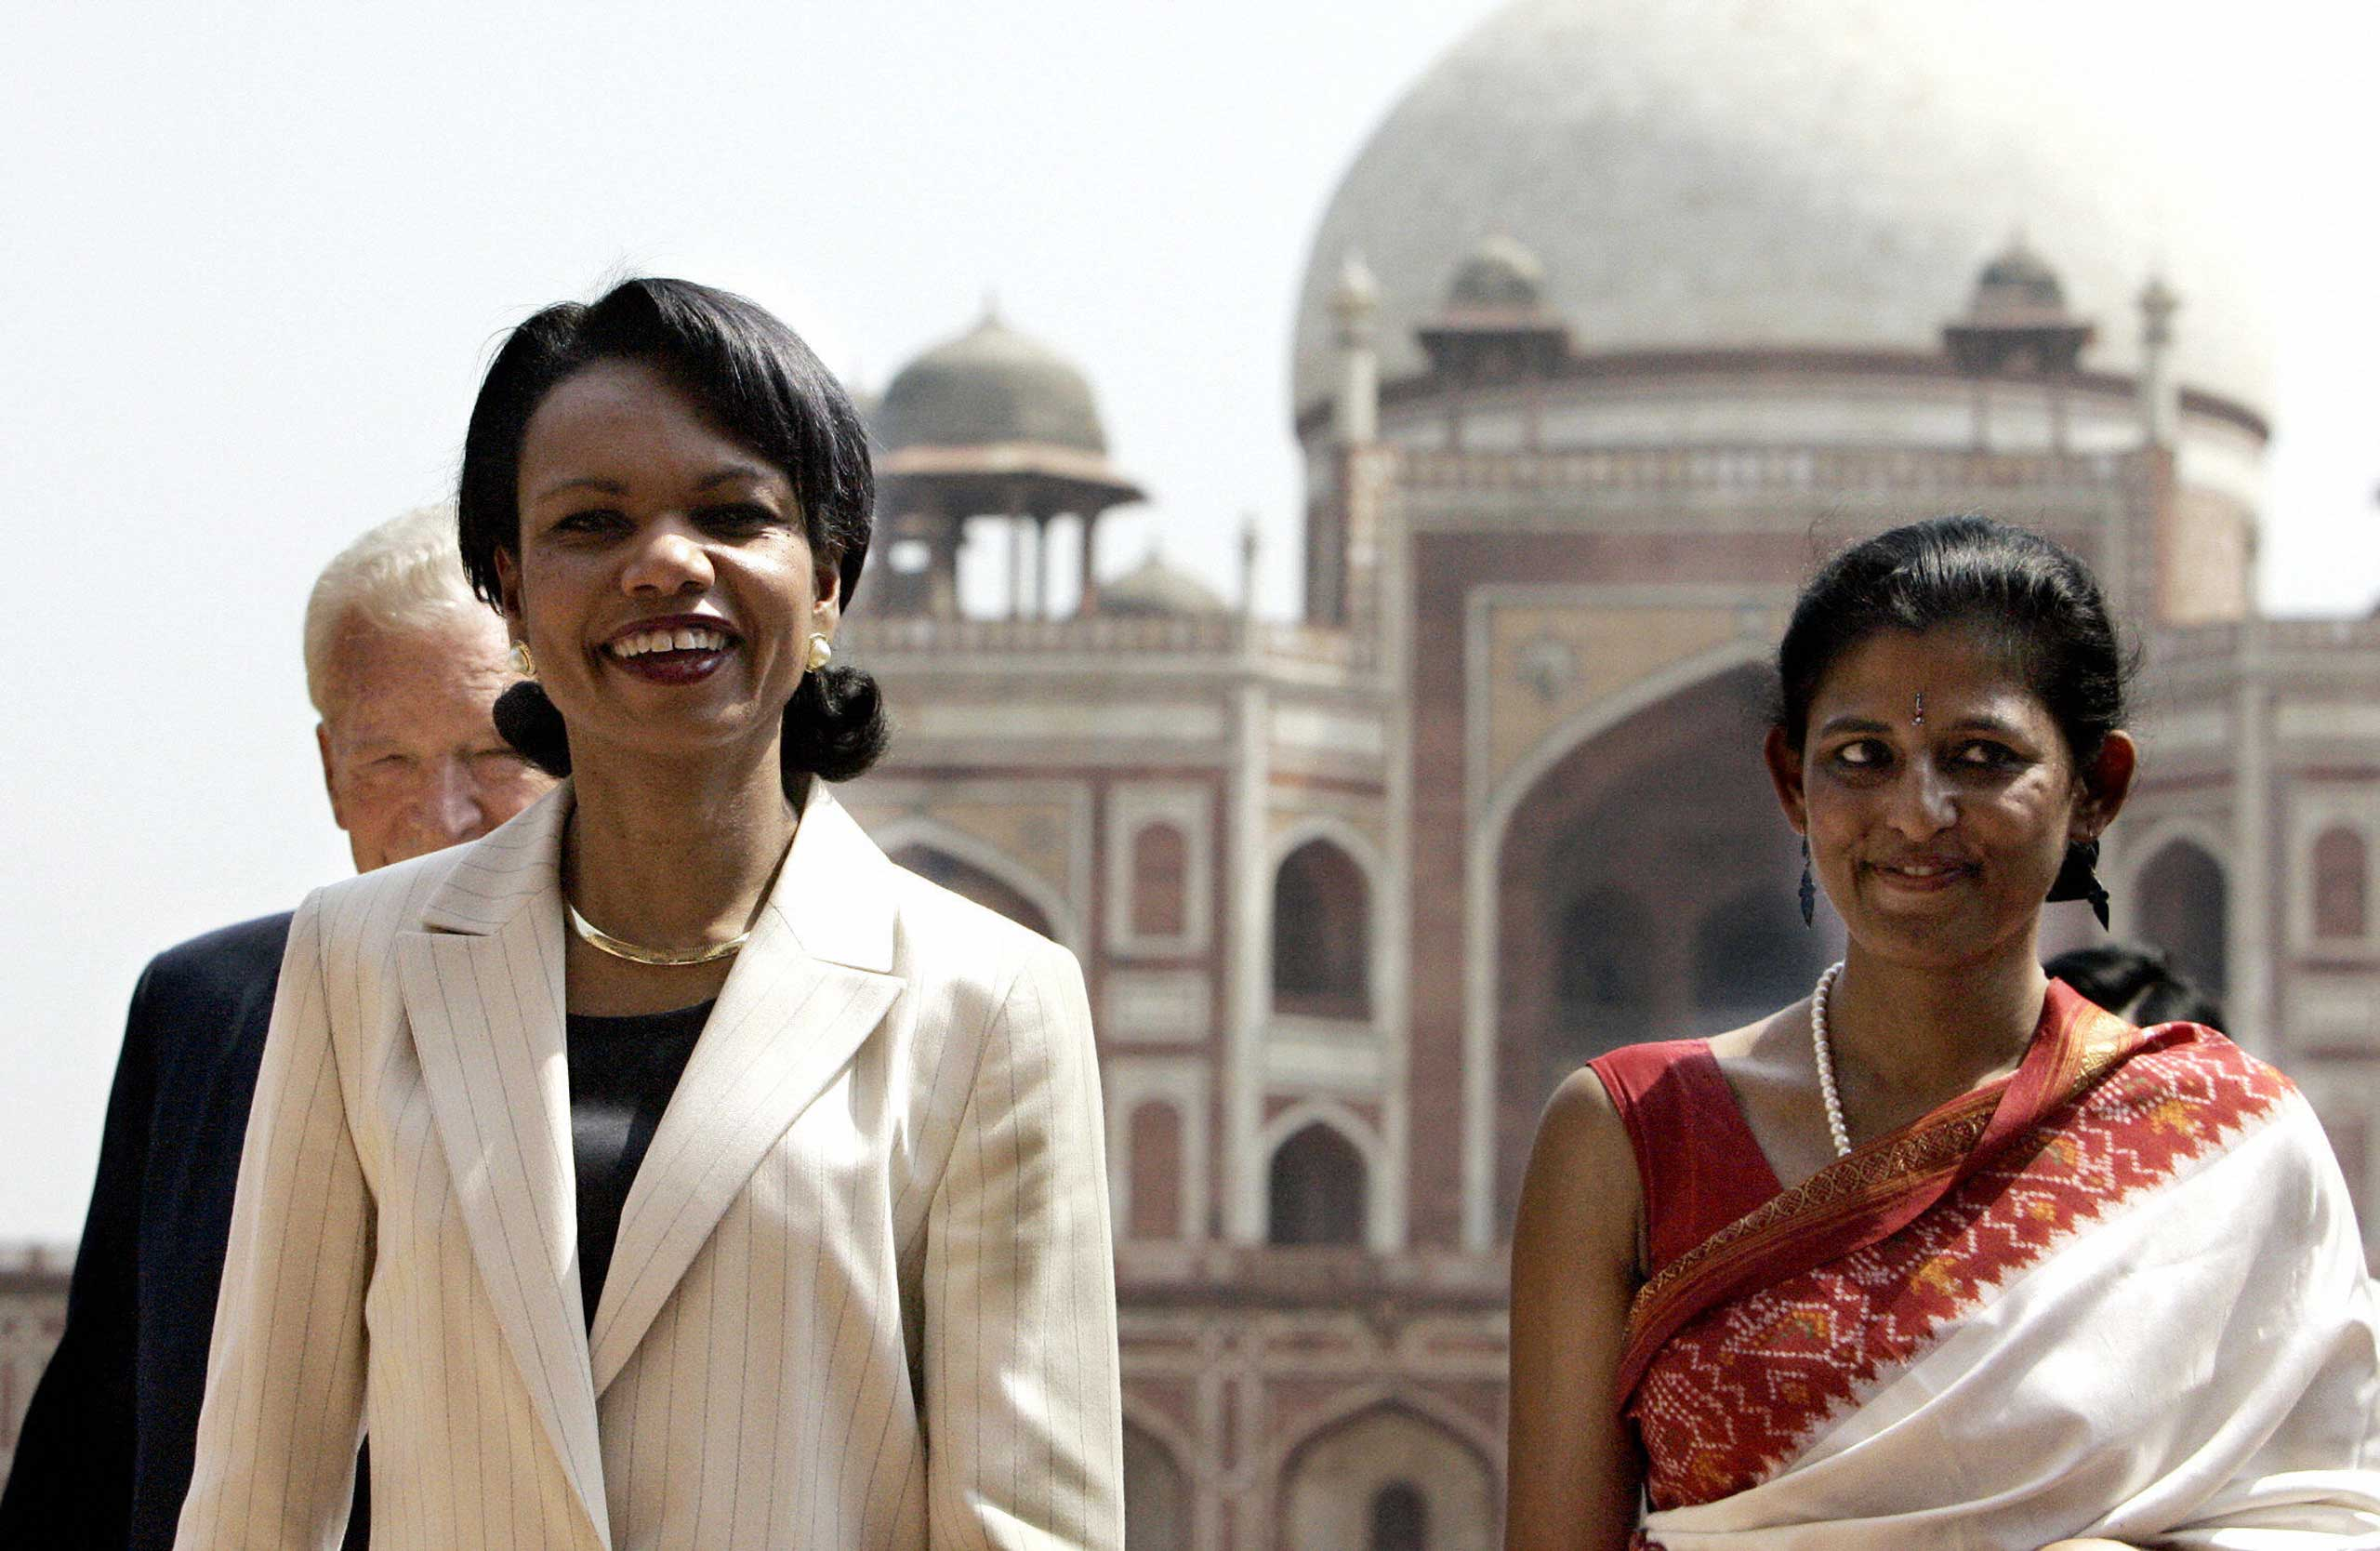 <b>2005:</b> After the Sept. 11, 2001 attacks, the US worked closely with India to strategically monitor the Indian Ocean and Suez Canal to Singapore. Here, US Secretary of State Condoleezza Rice visits Humayun's Tomb in New Delhi